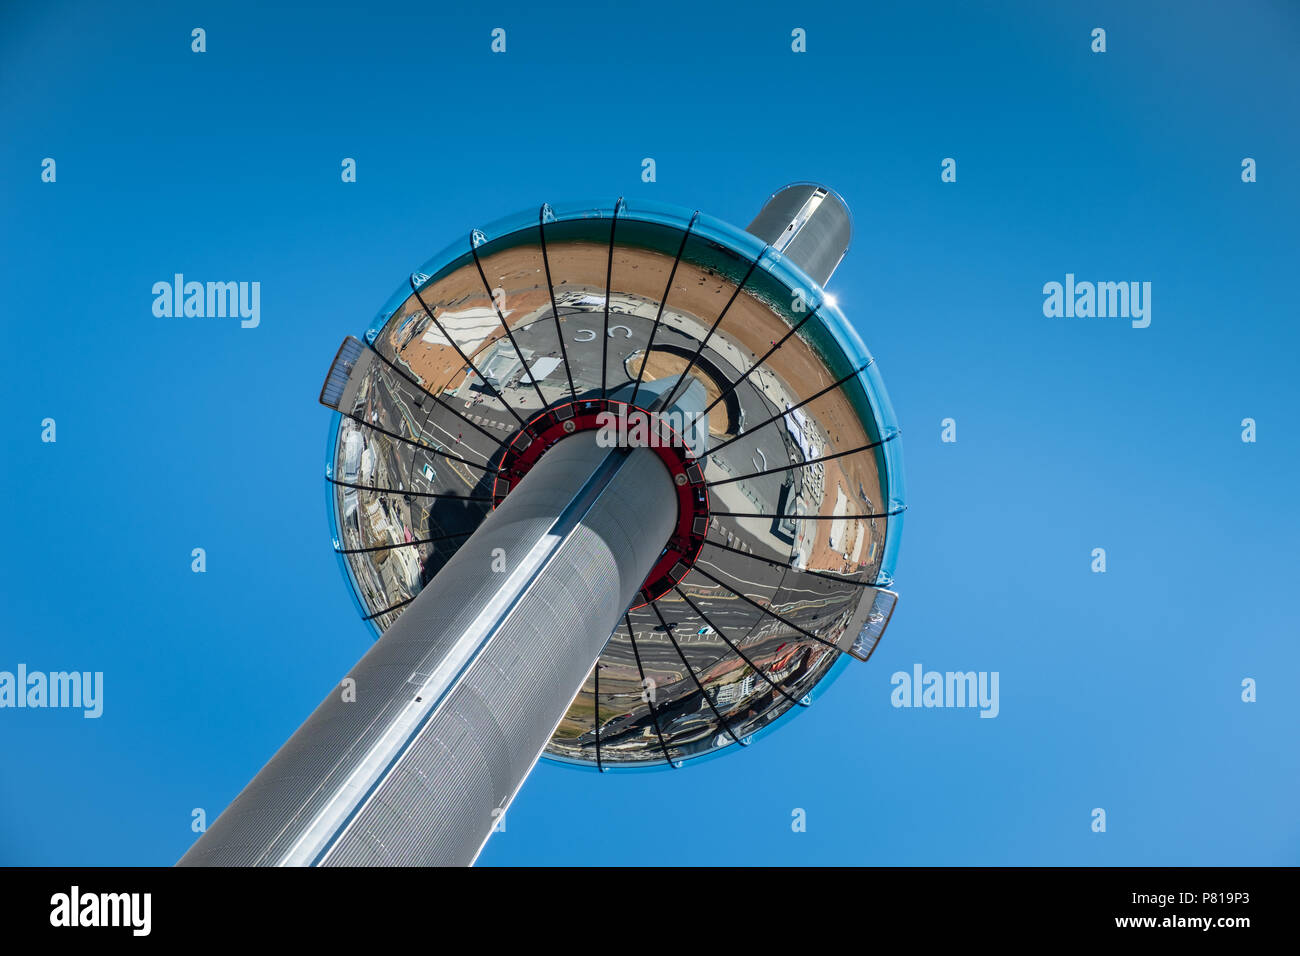 British Airways i360 observation tower on a sunny day with a clear blue sky backdrop with copy space - Stock Image